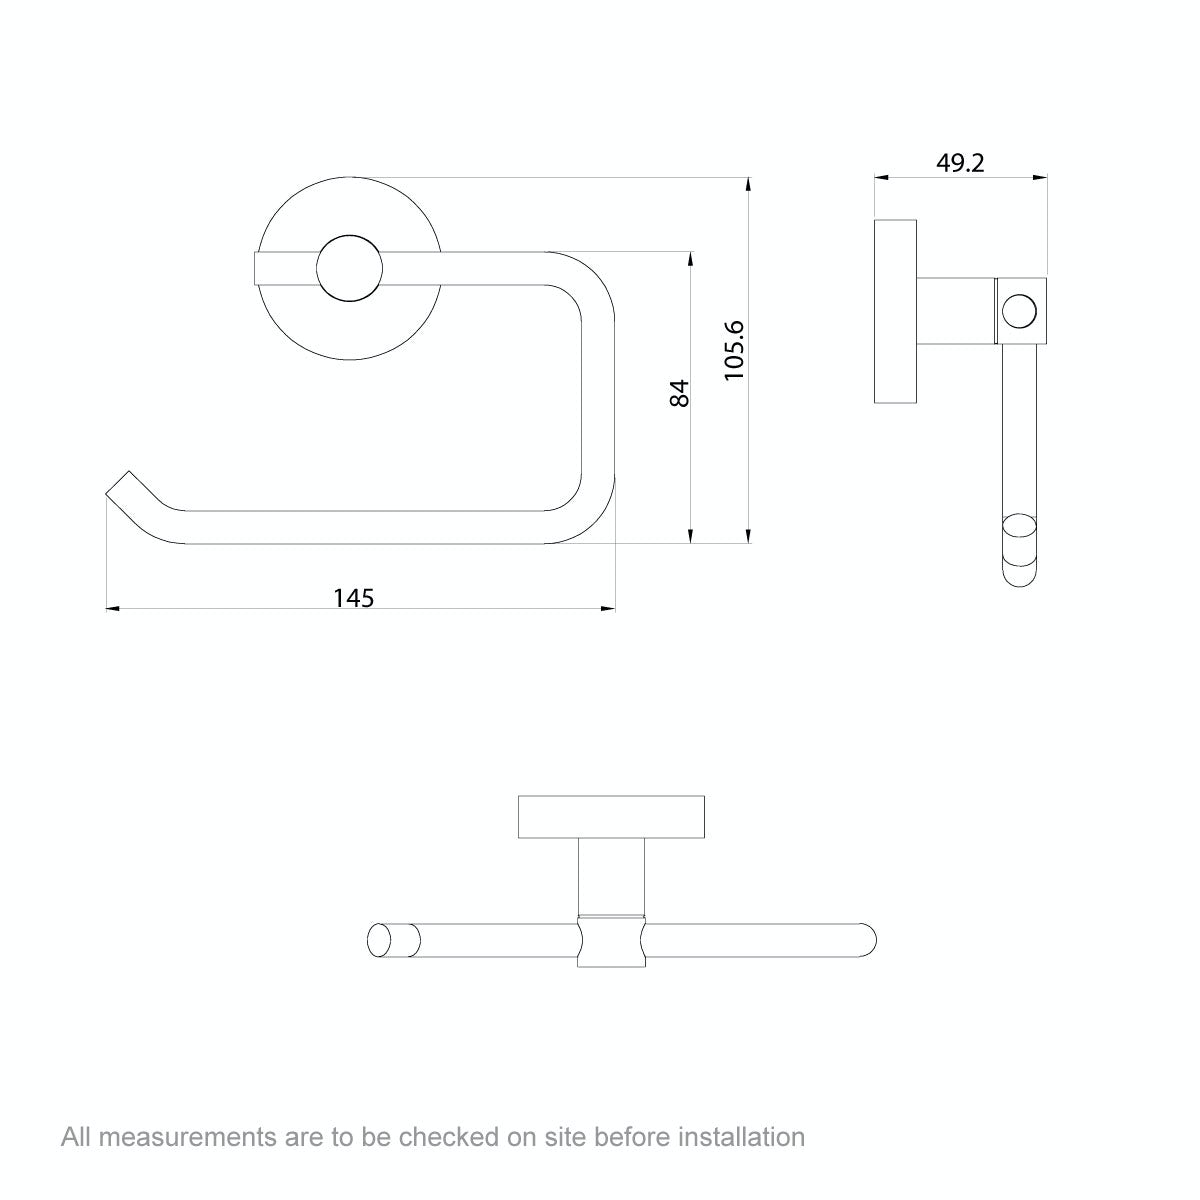 Dimensions for Orchard Lunar toilet roll holder